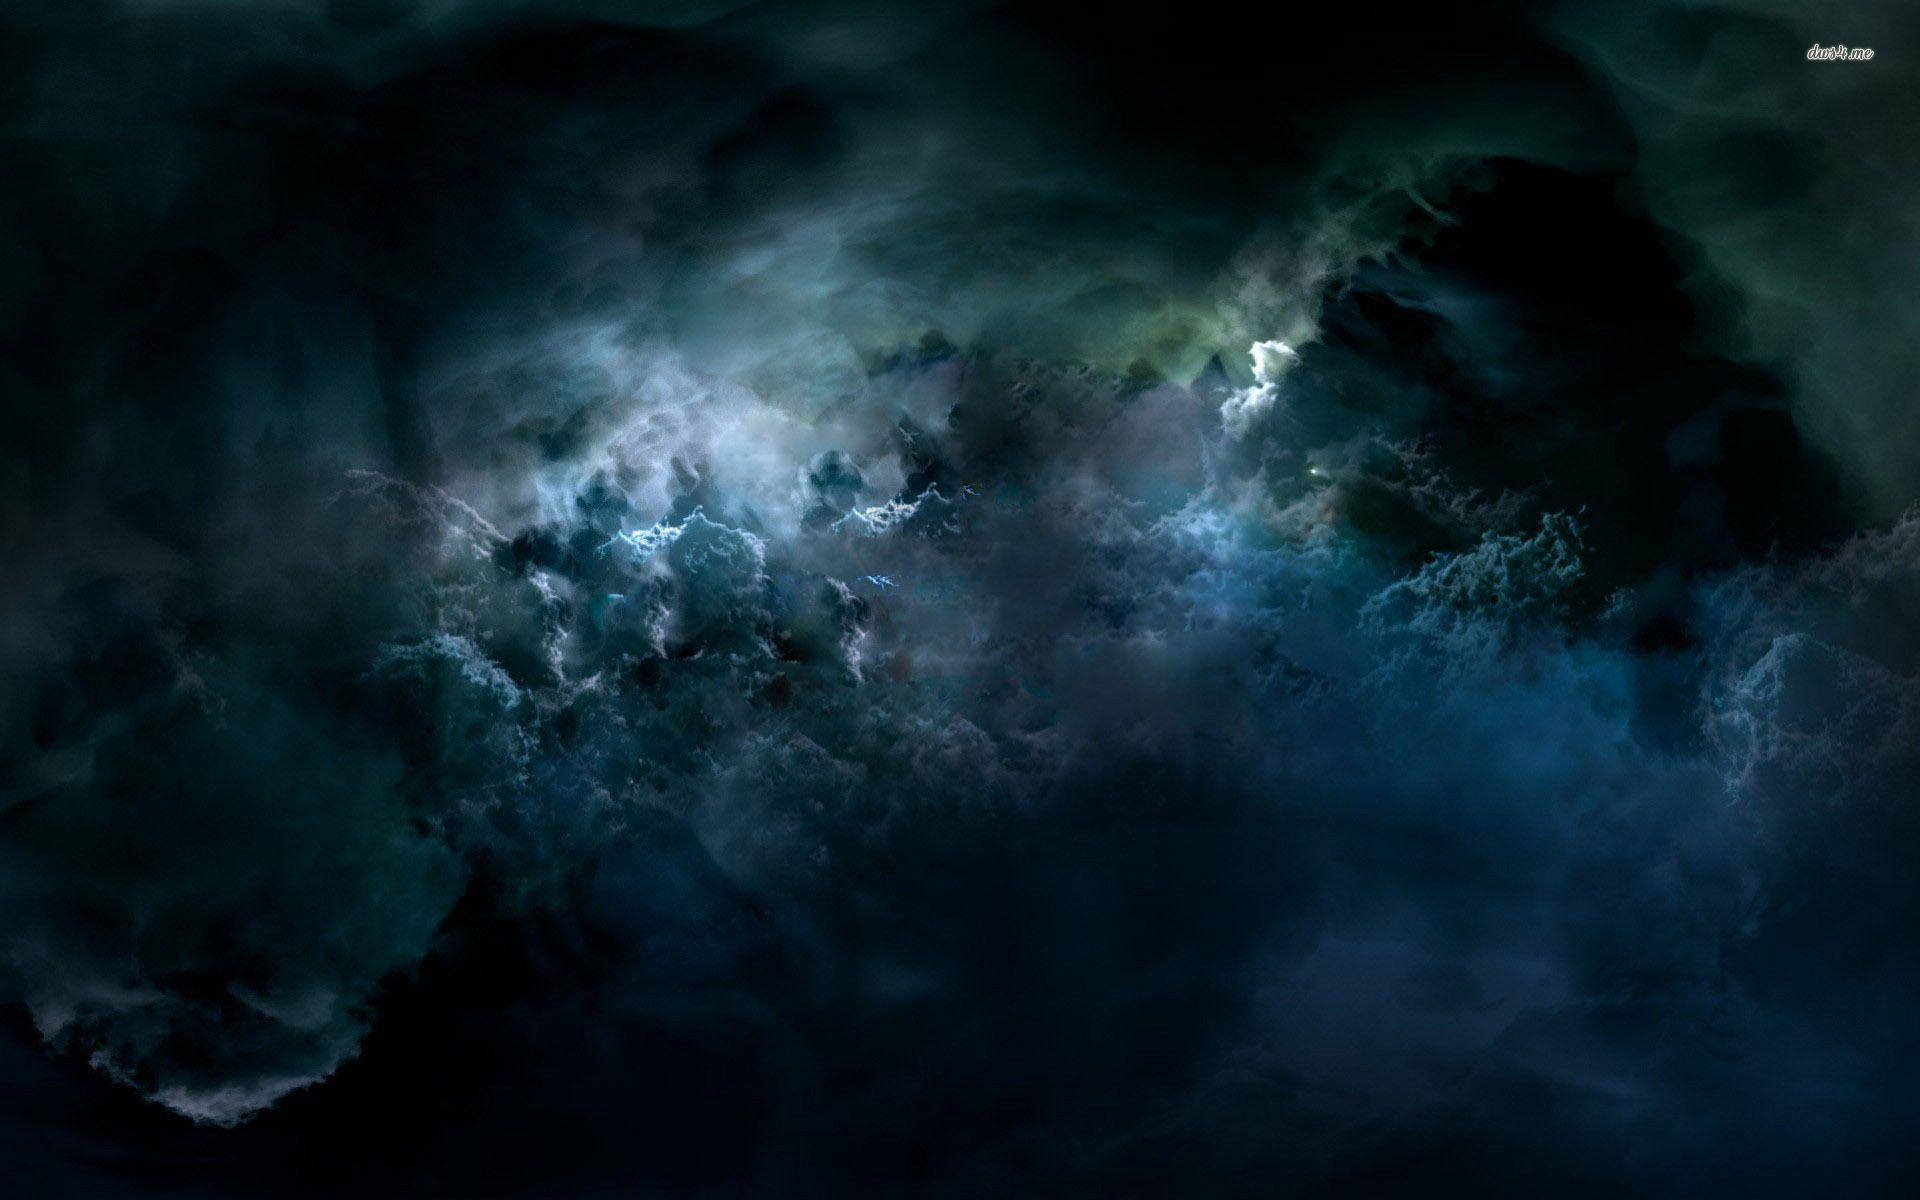 Dark Sky Wallpapers - Wallpaper Cave